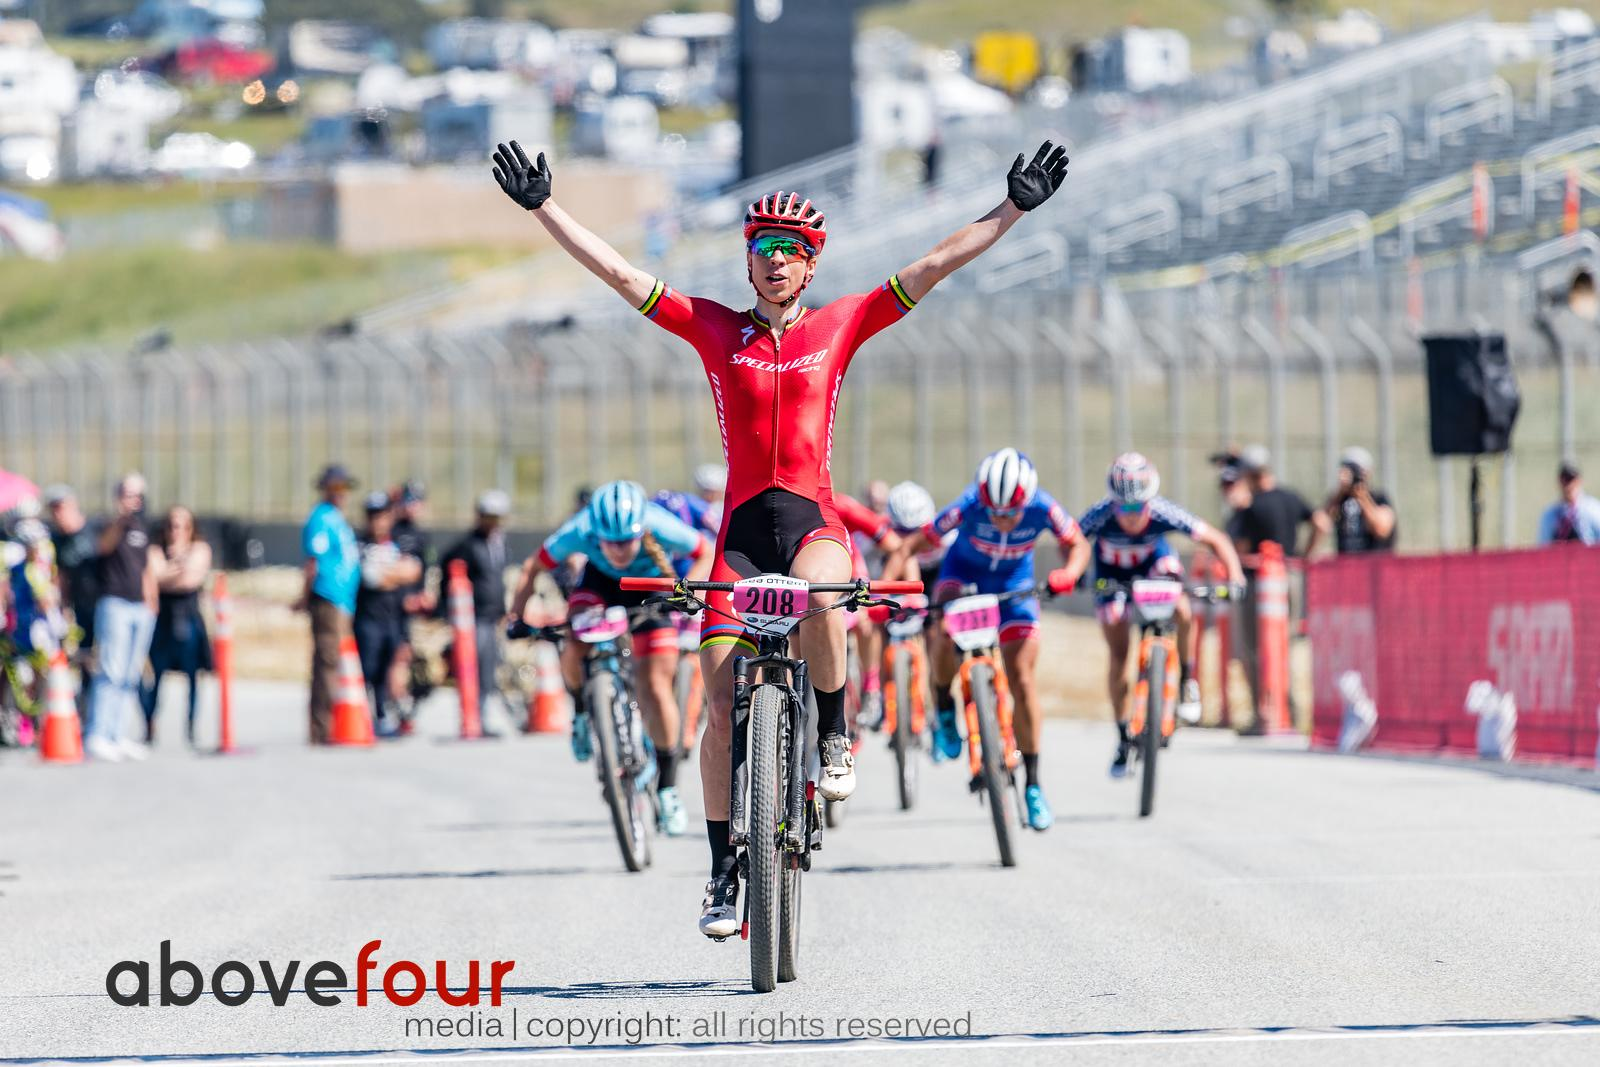 Annika Langvad (Specialized Racing) takes the victory ahead of Katerina Nash (Clif Pro Team) and Evie Richards (Trek Factory ...